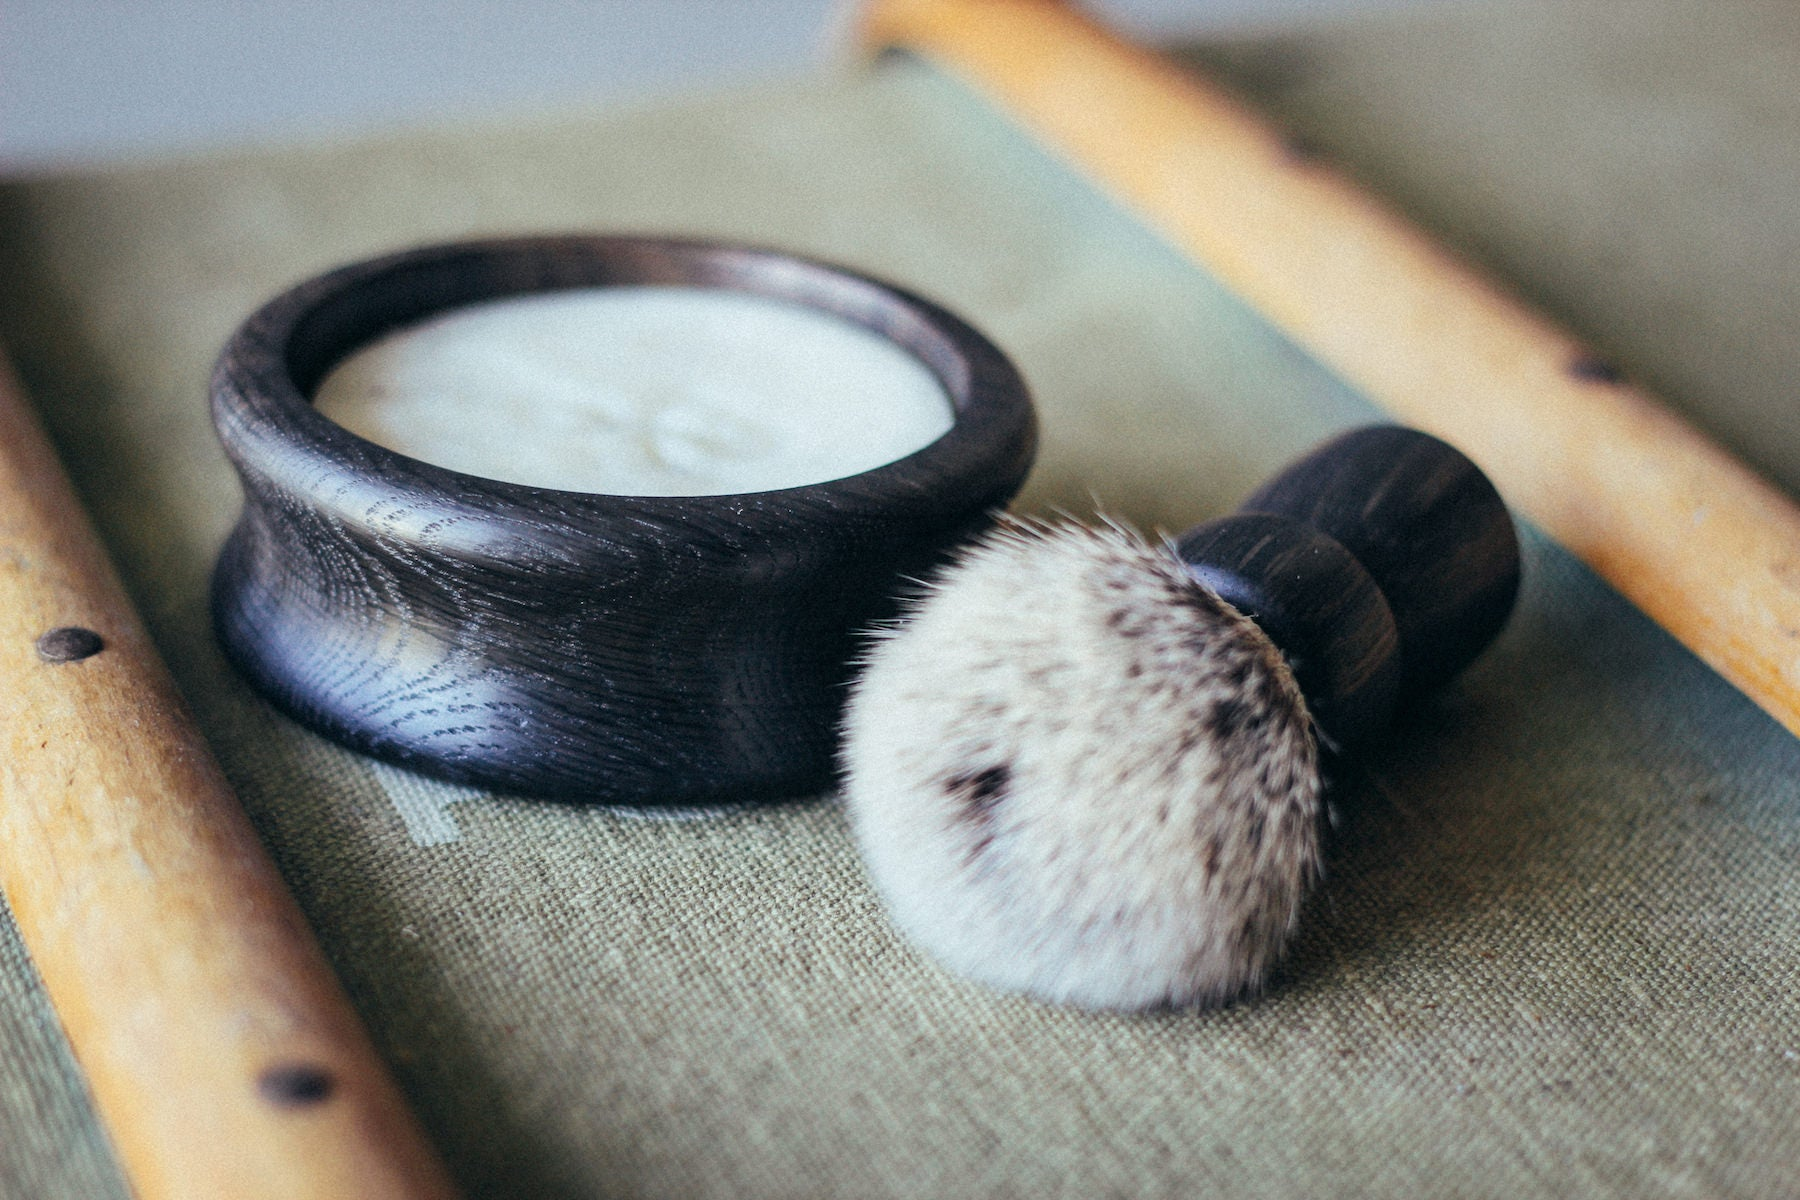 Thomas Clipper brush and bowl handmade in Britain by Richard. Premium badger-friendly synthetic bristles for a sophisticated shave.